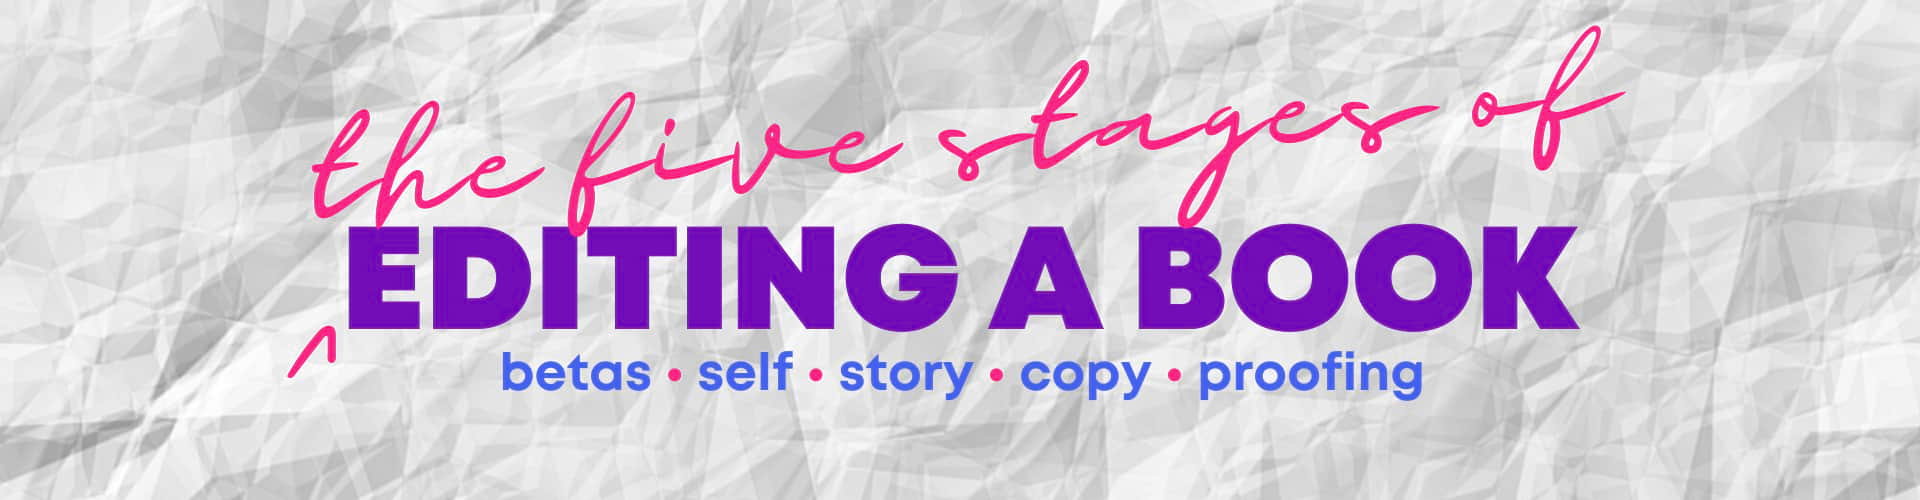 five stages of editing a book - beta readers, self-editing, story editing, developemental editing, content editing, copy editing, proofing